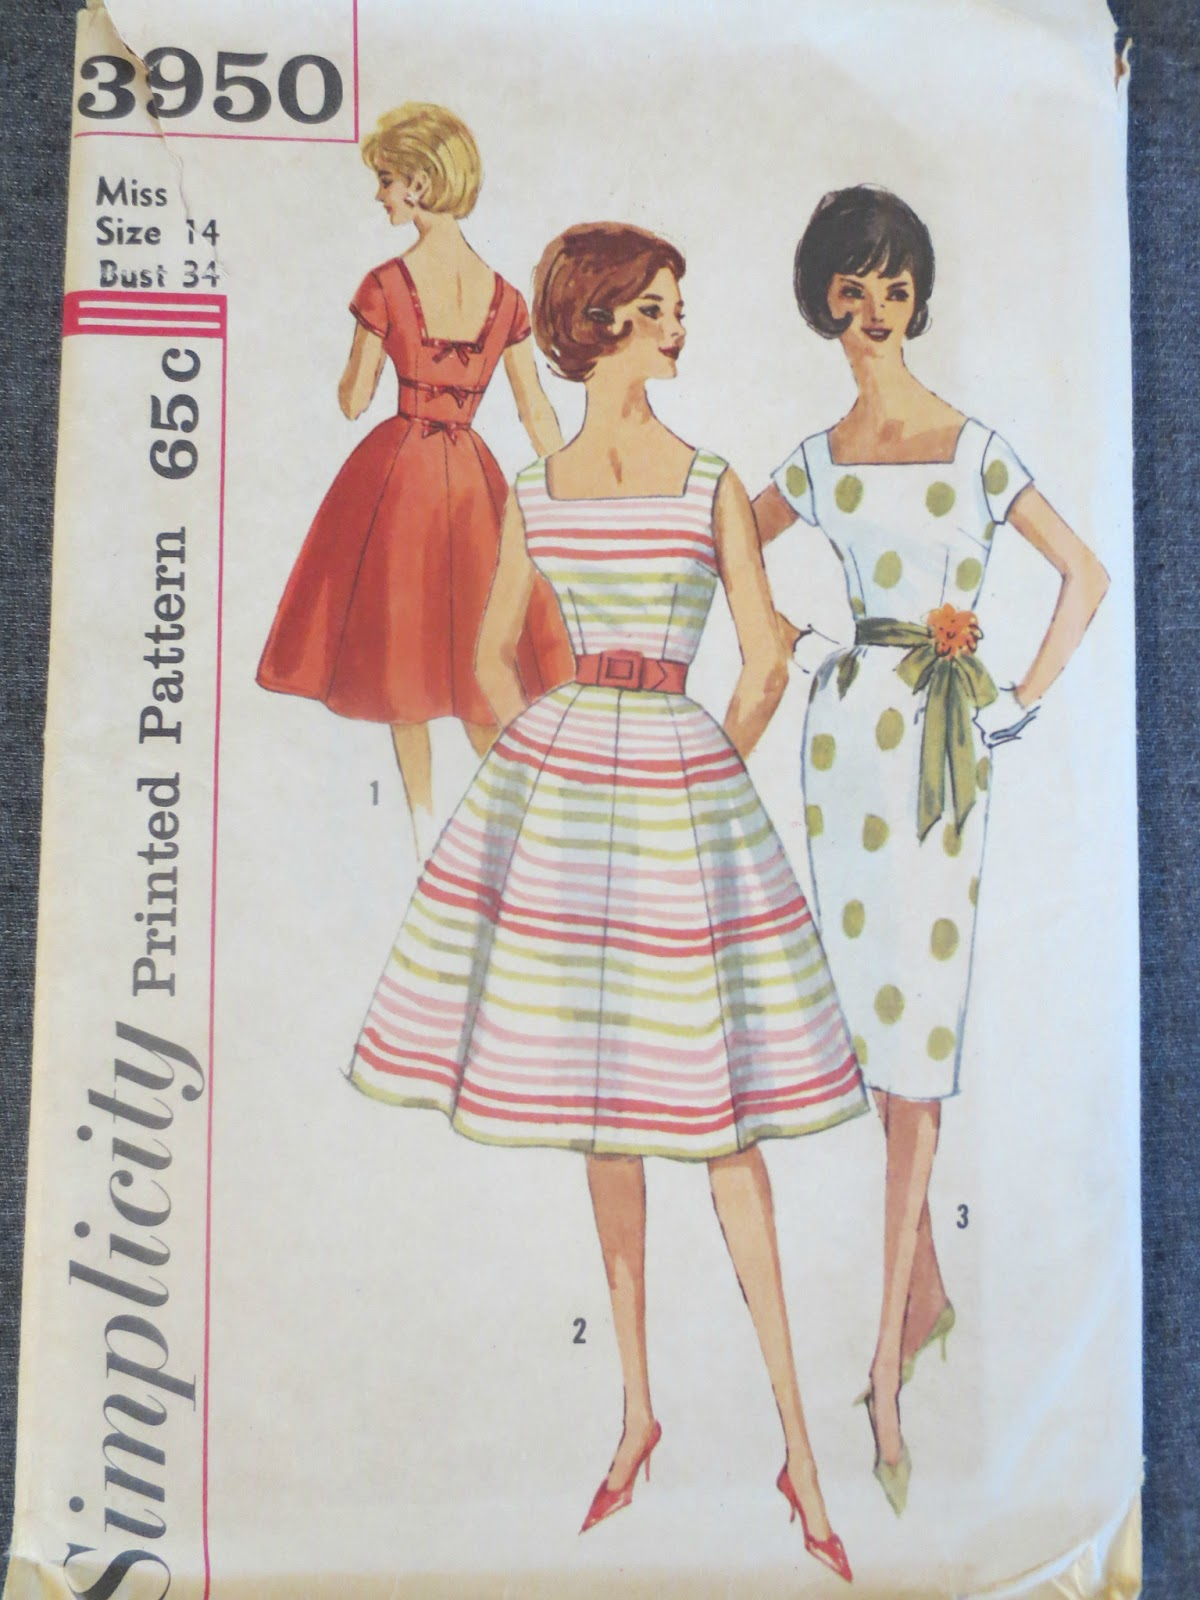 Simplicity 3950 via Brentwood Lane